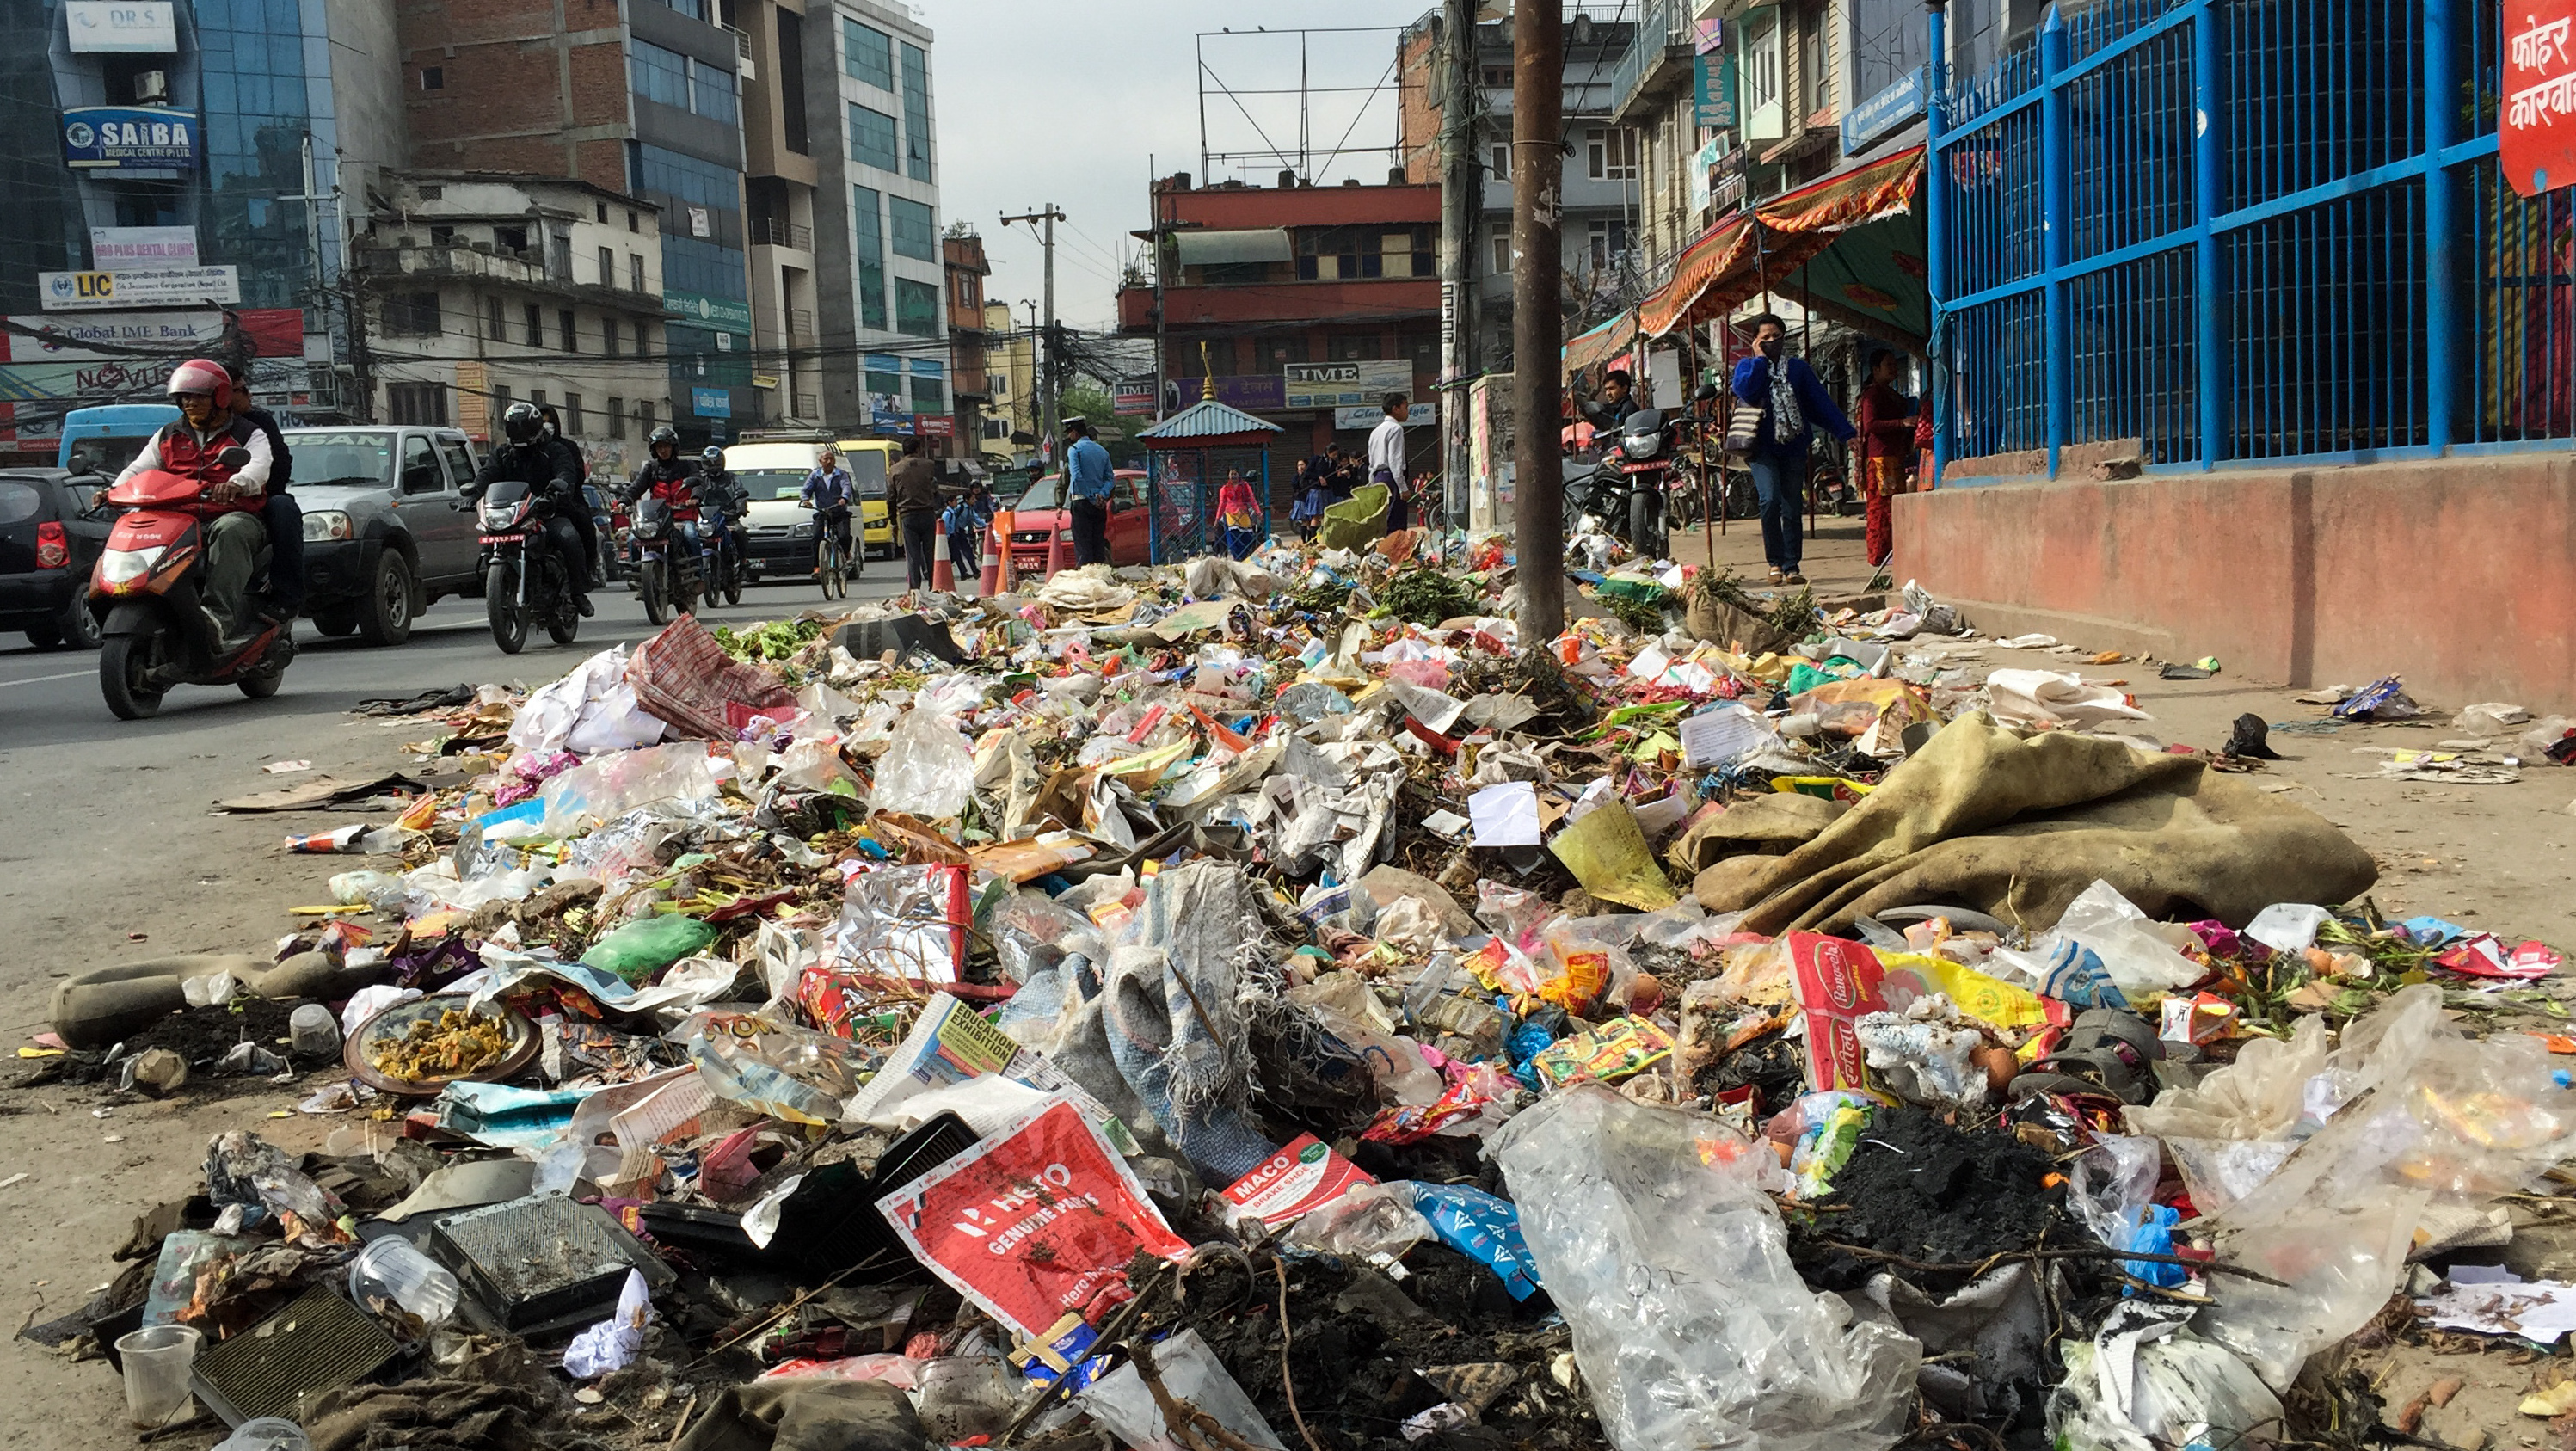 Even Oscar the Grouch might be put off by the growing heaps of trash in the center of Kathmandu, Nepal.